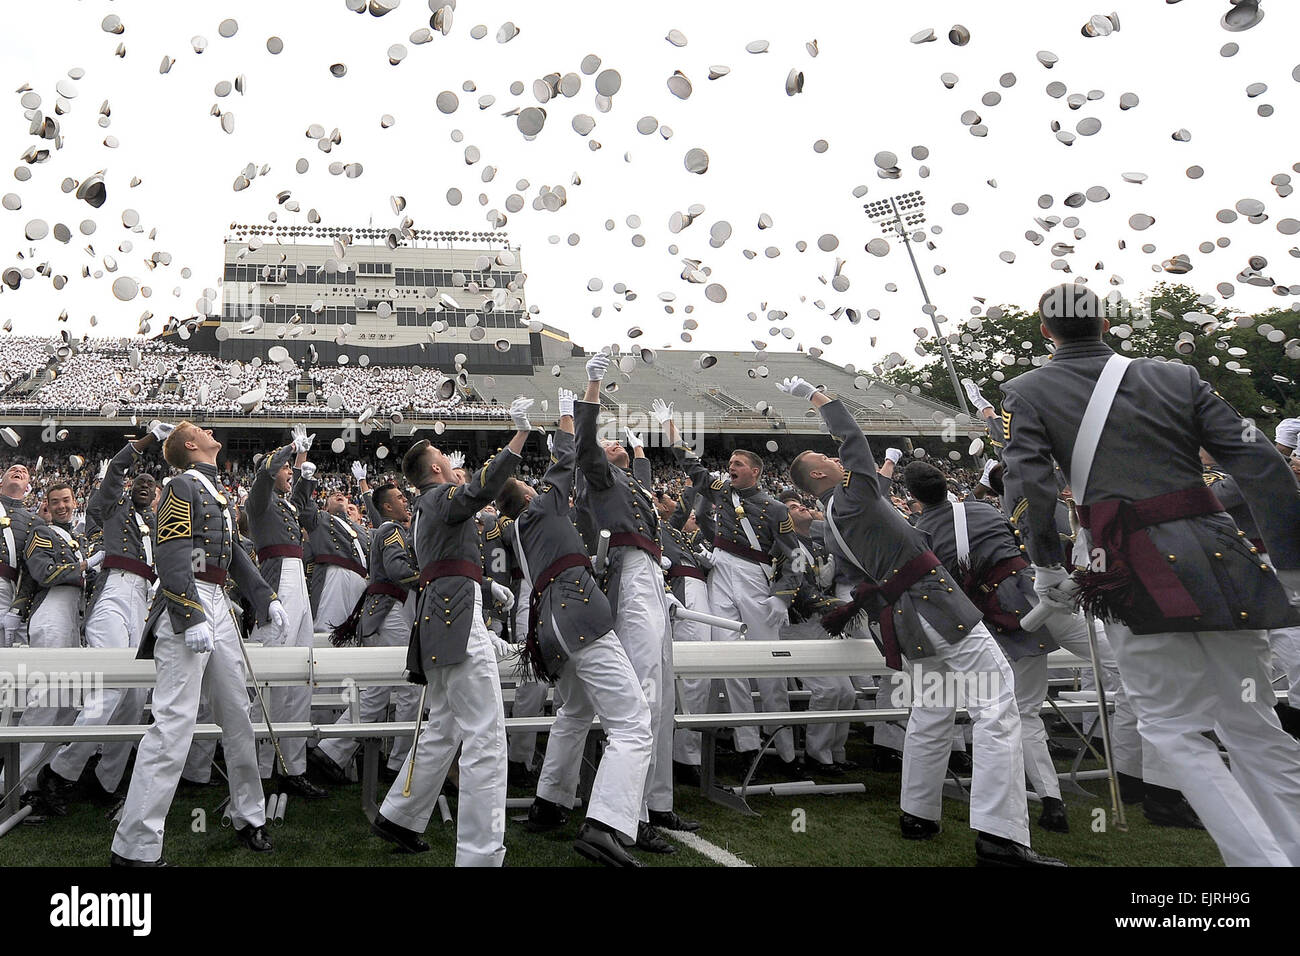 U.S. Military Academy graduates toss their hats during commencement ceremonies at West Point, N.Y., May 23, 2009. Stock Photo